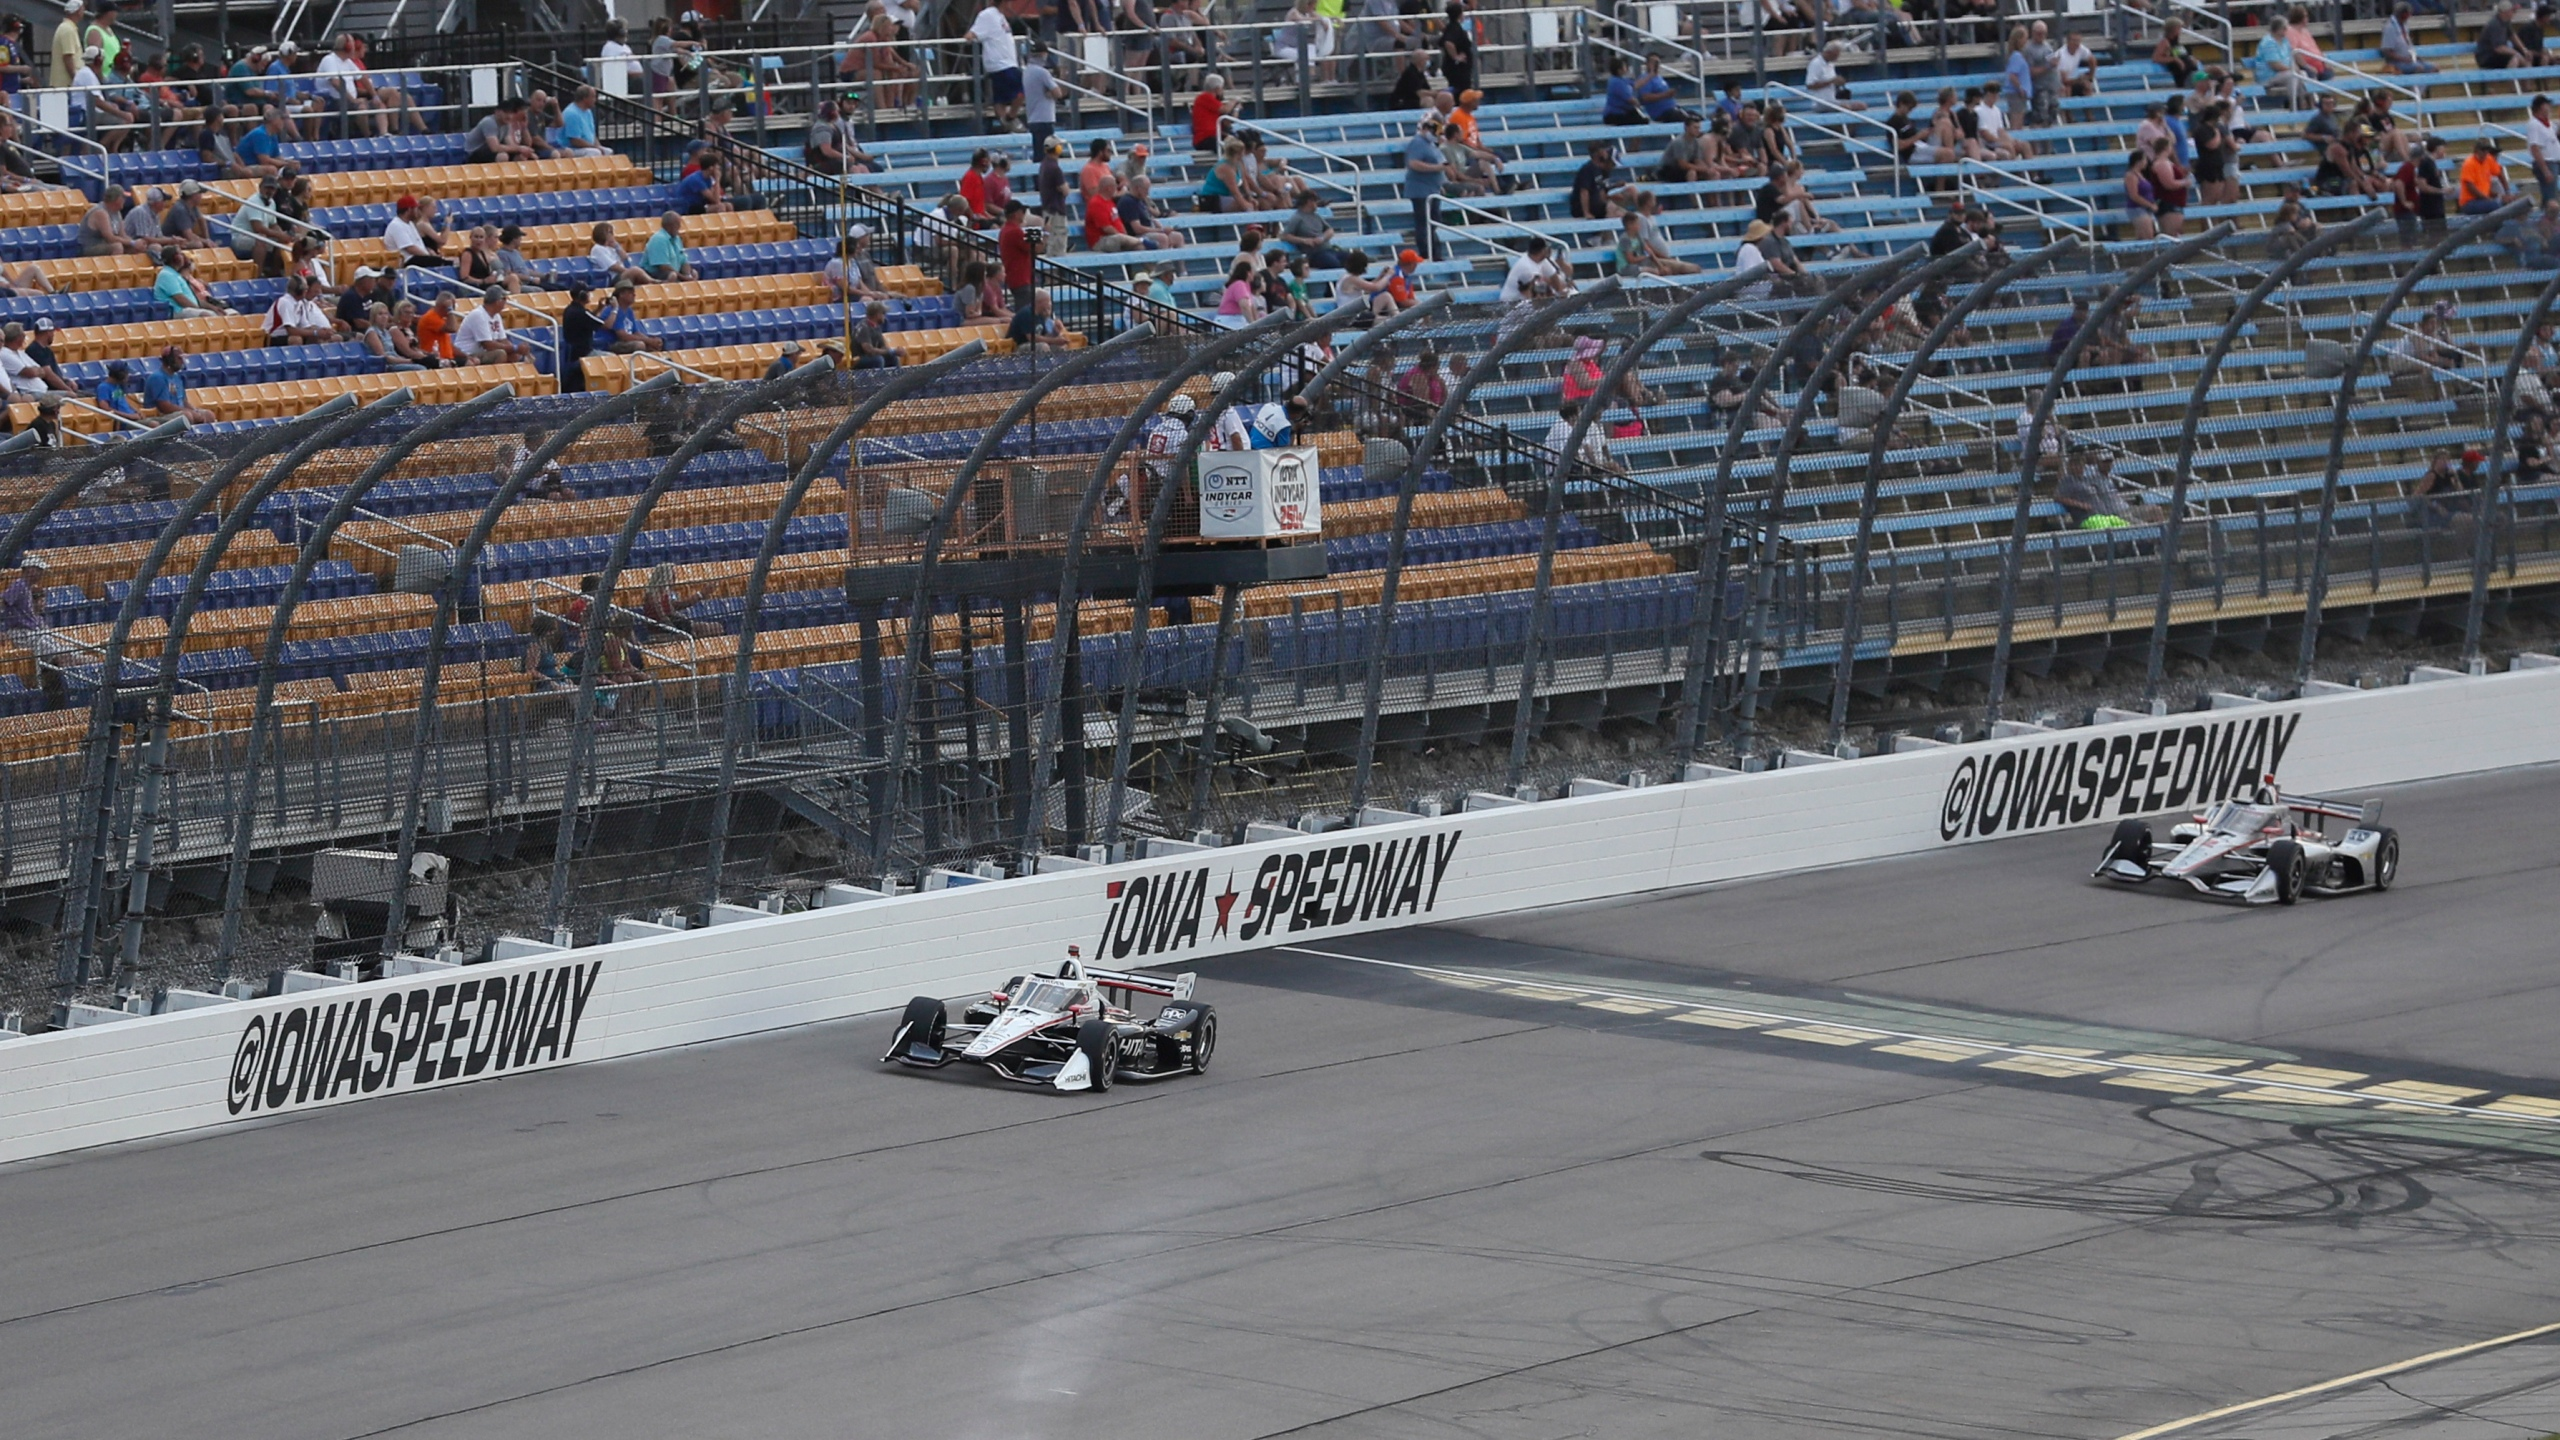 Josef Newgarden, Will Power